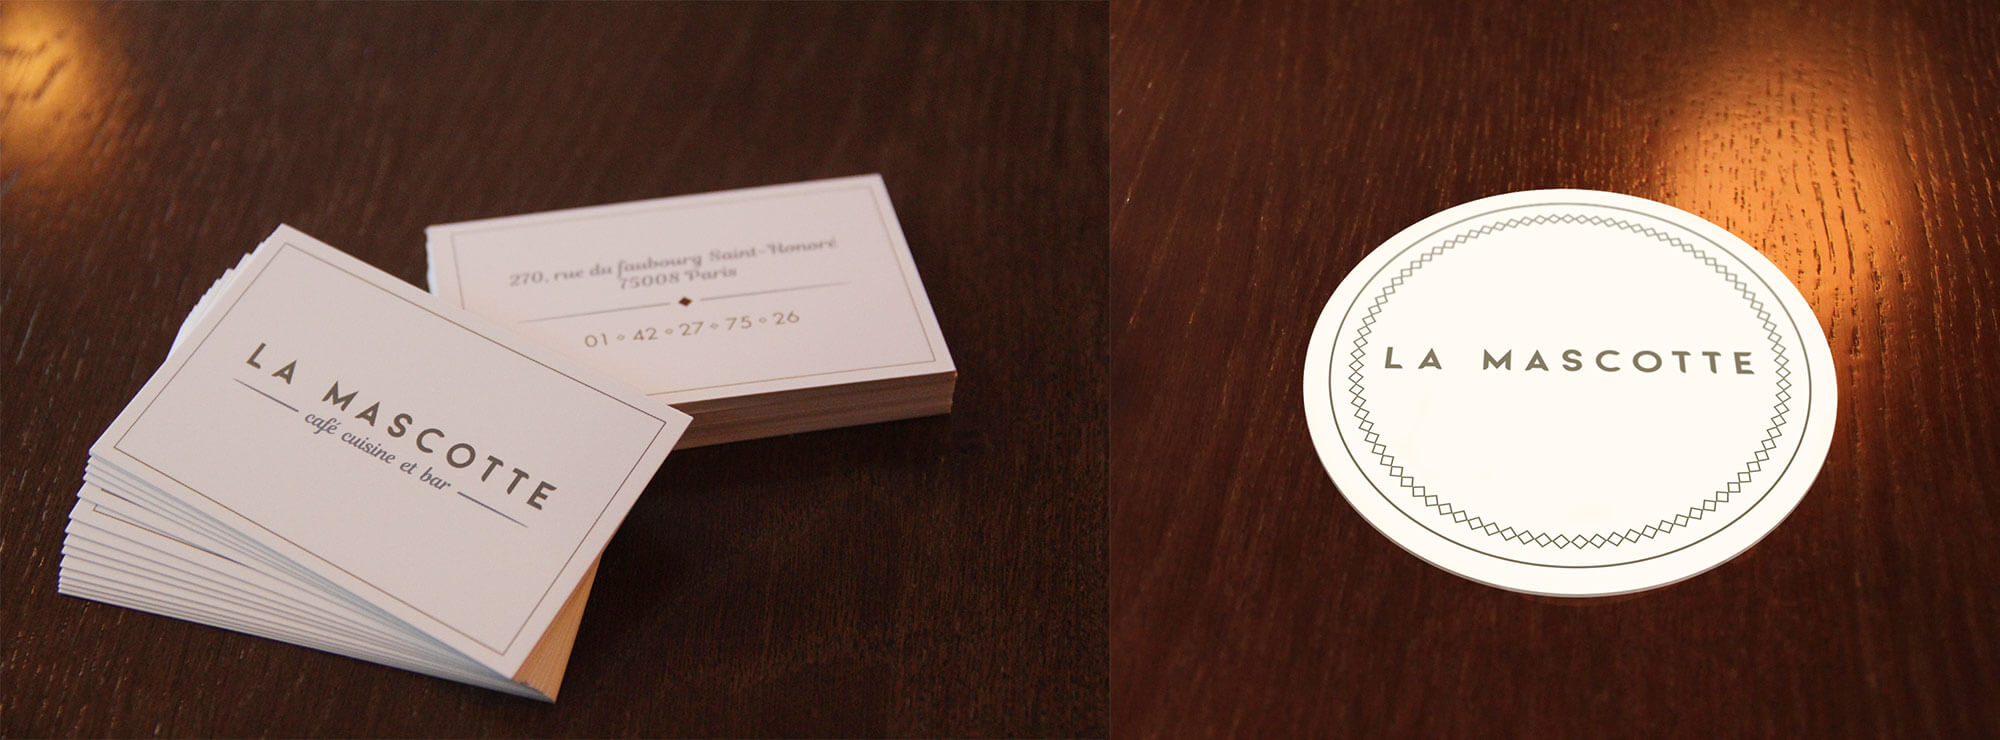 04.lamascotte business card logo cafe bar restaurant sous bock.jpg